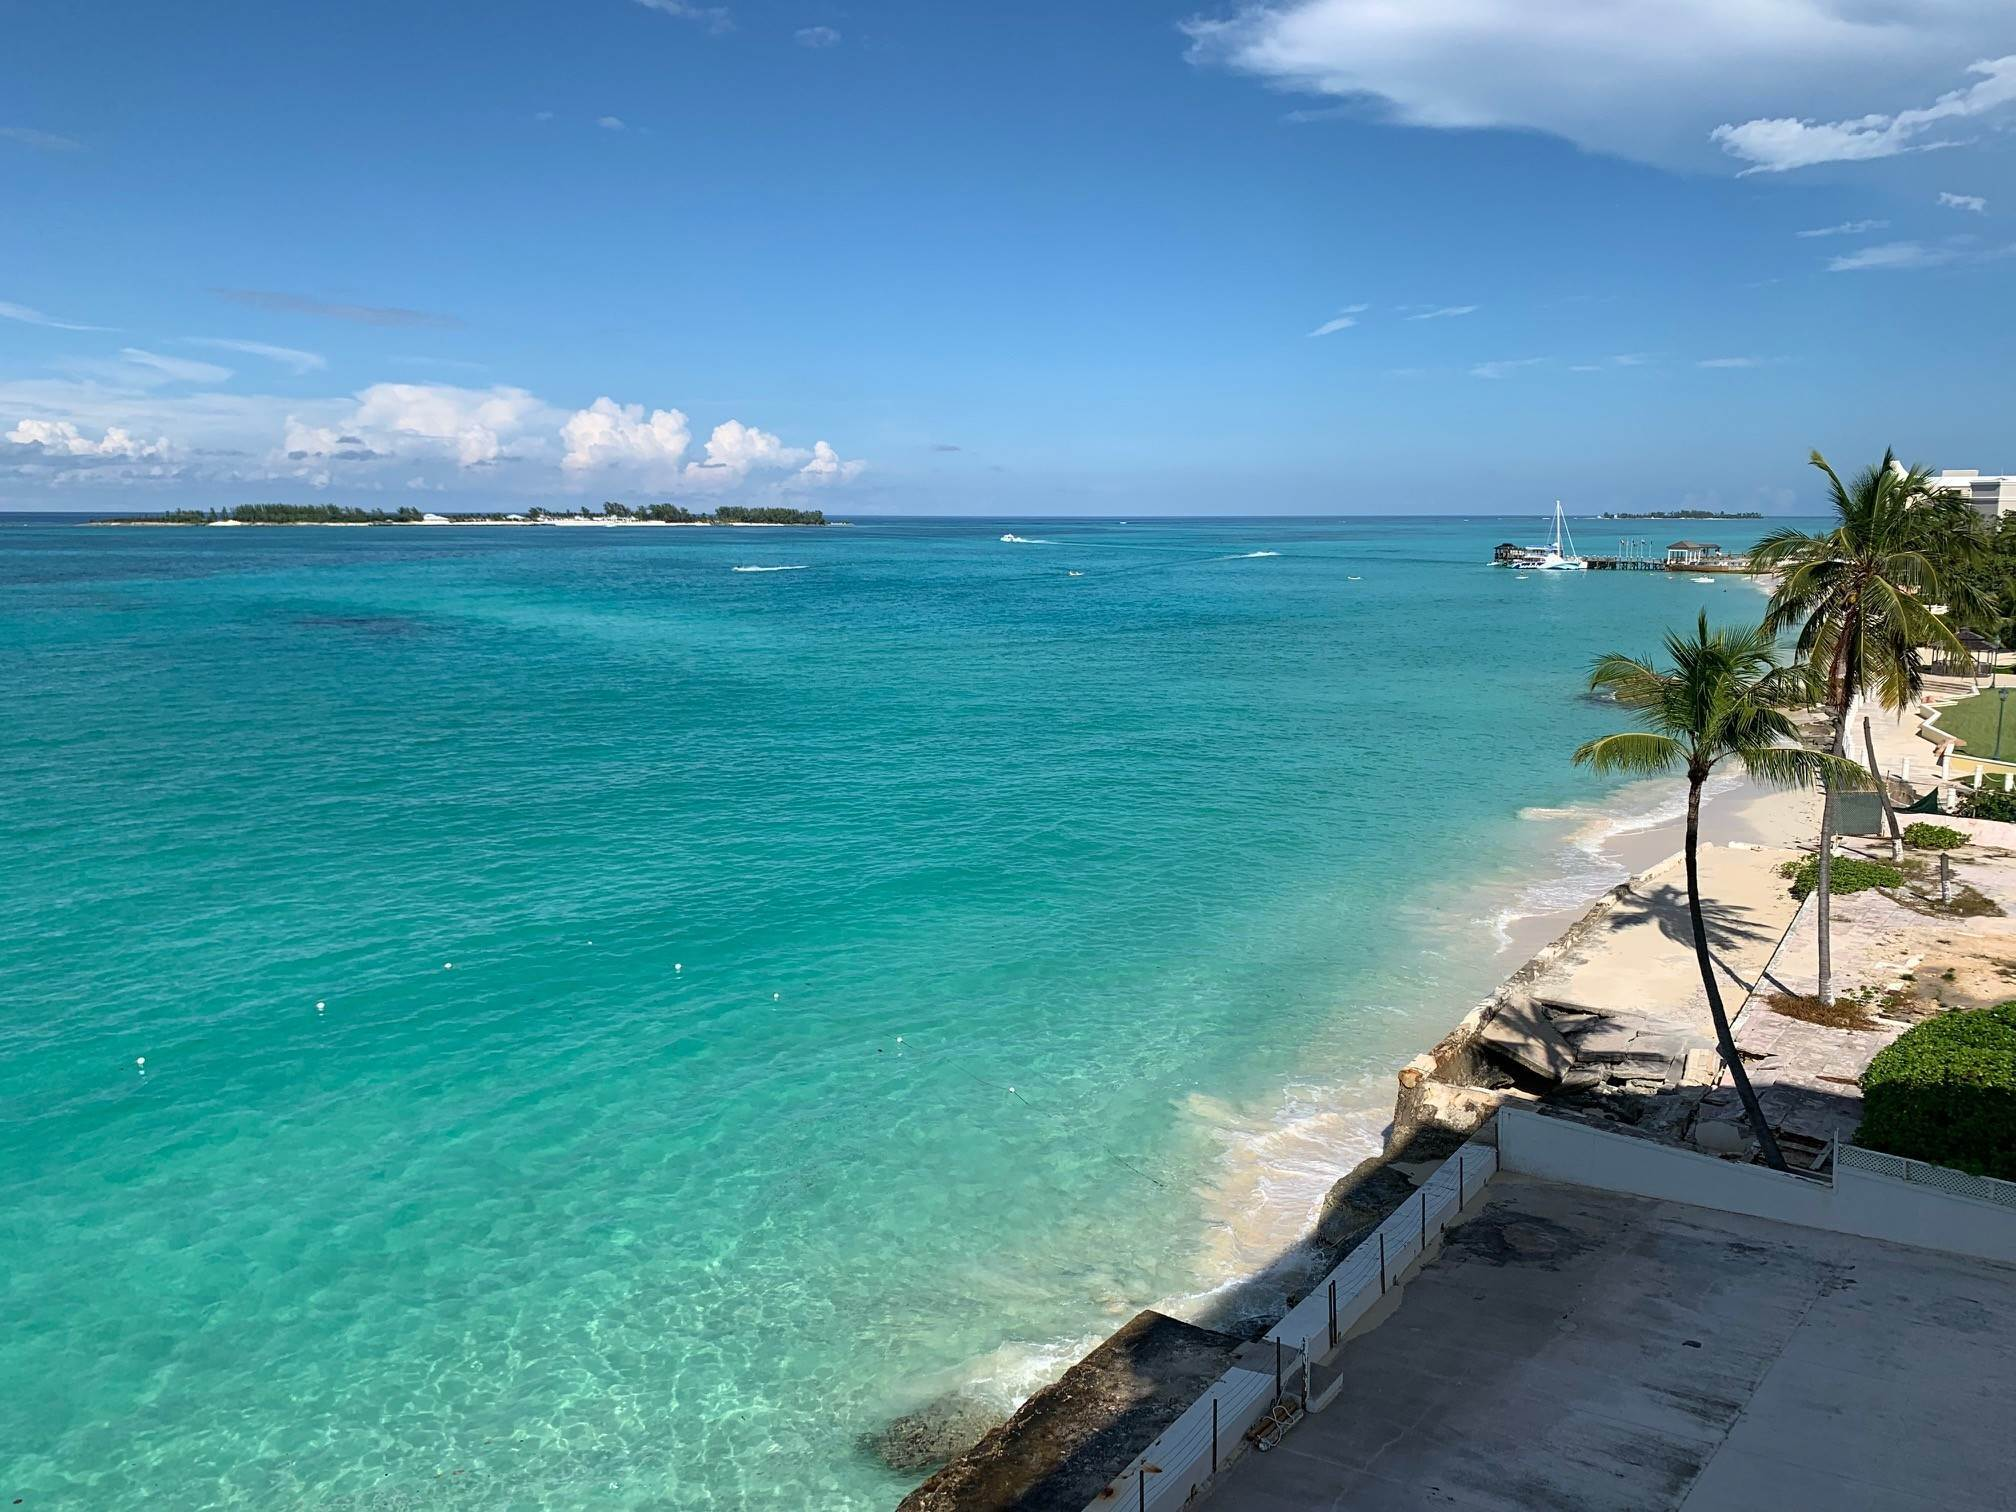 Co-op / Condo for Rent at Contemporary Ocean View Condo For Rent - In the Heart of Cable Beach Conchrest, Cable Beach, Nassau And Paradise Island Bahamas